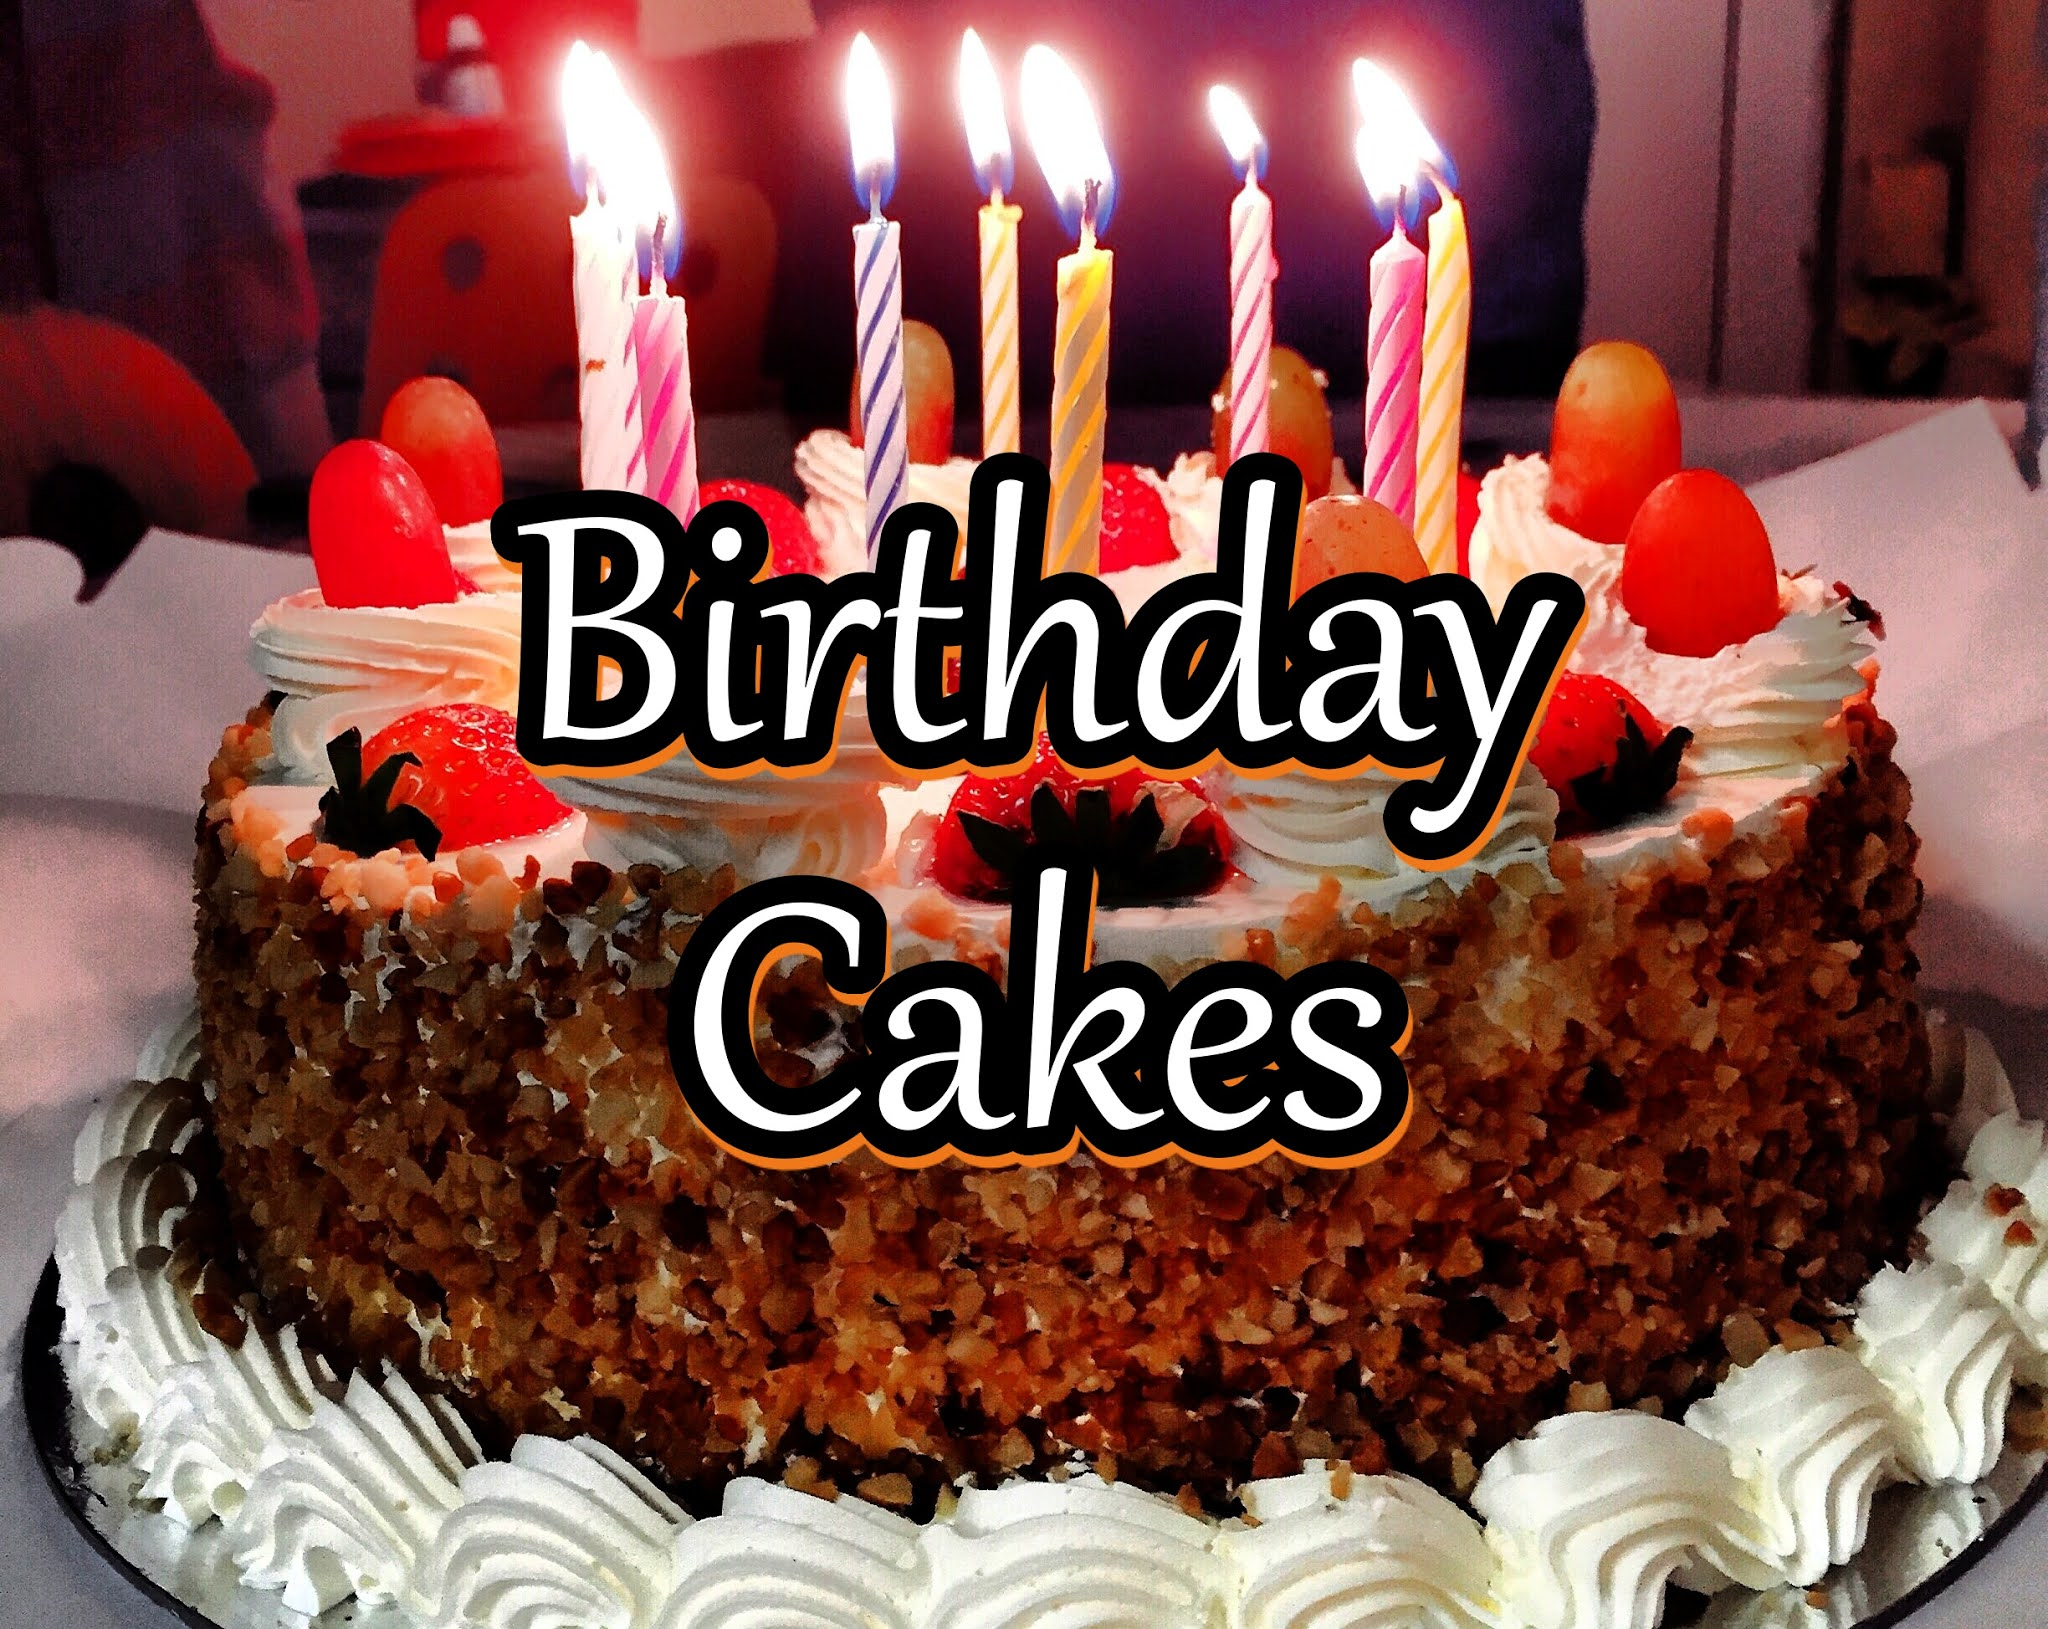 How to birthday cake delivery in Chennai?